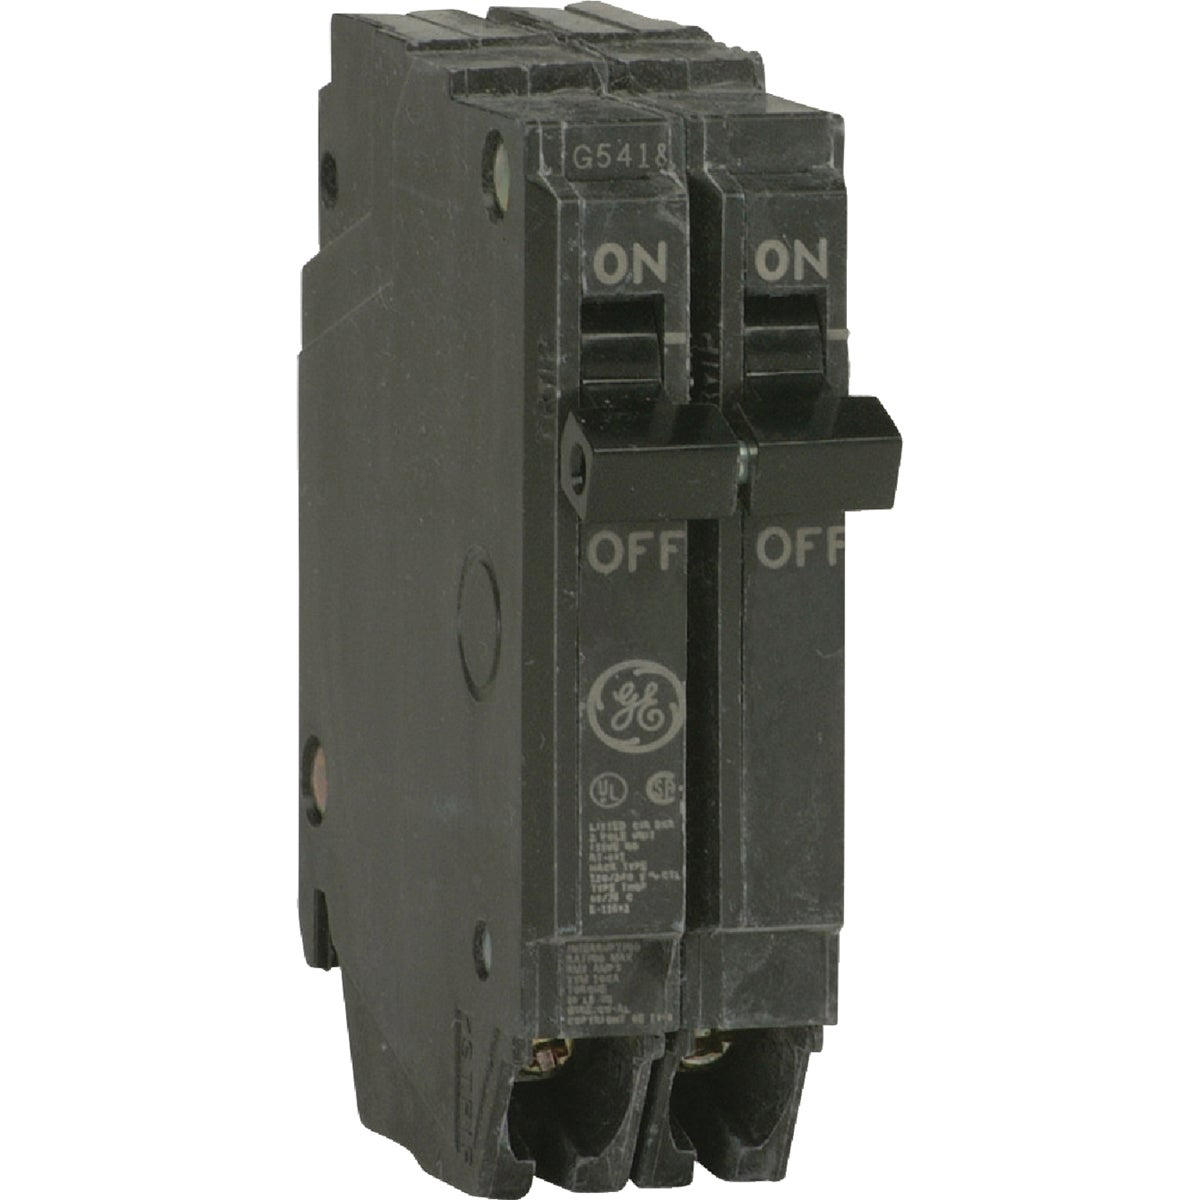 30A 2P CIRCUIT BREAKER - THQP230 by G E Industrial